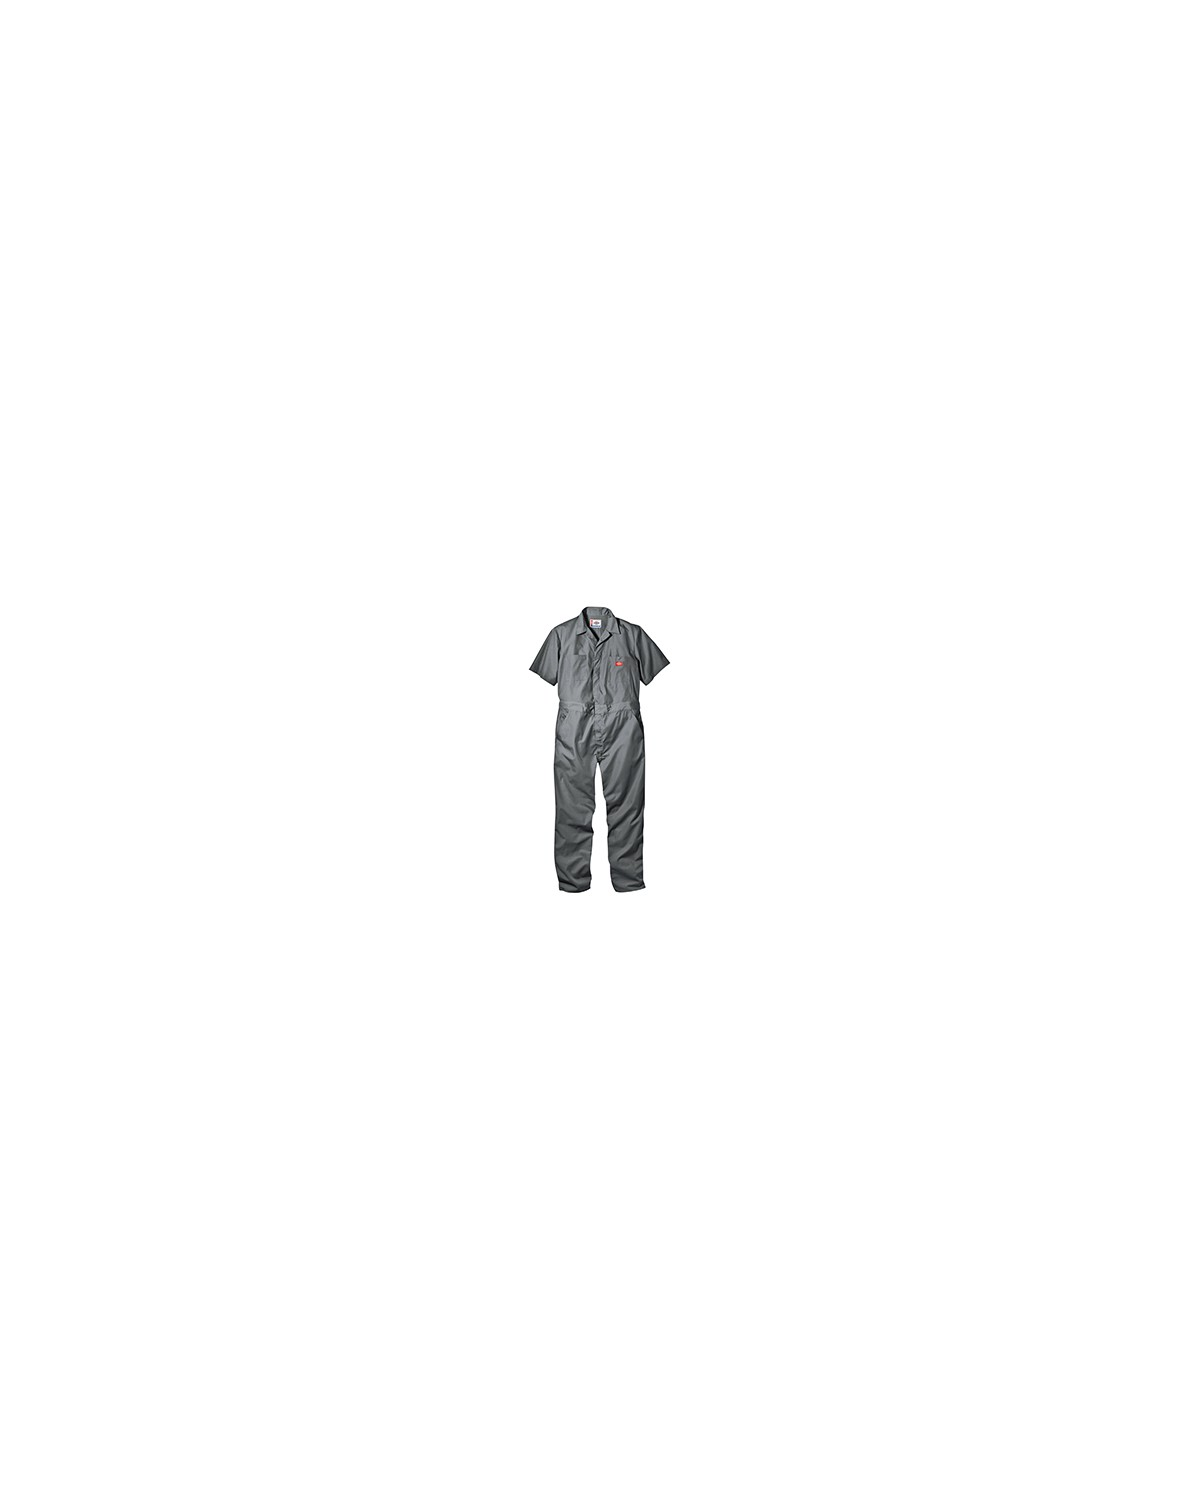 33999 Dickies GRAY XL